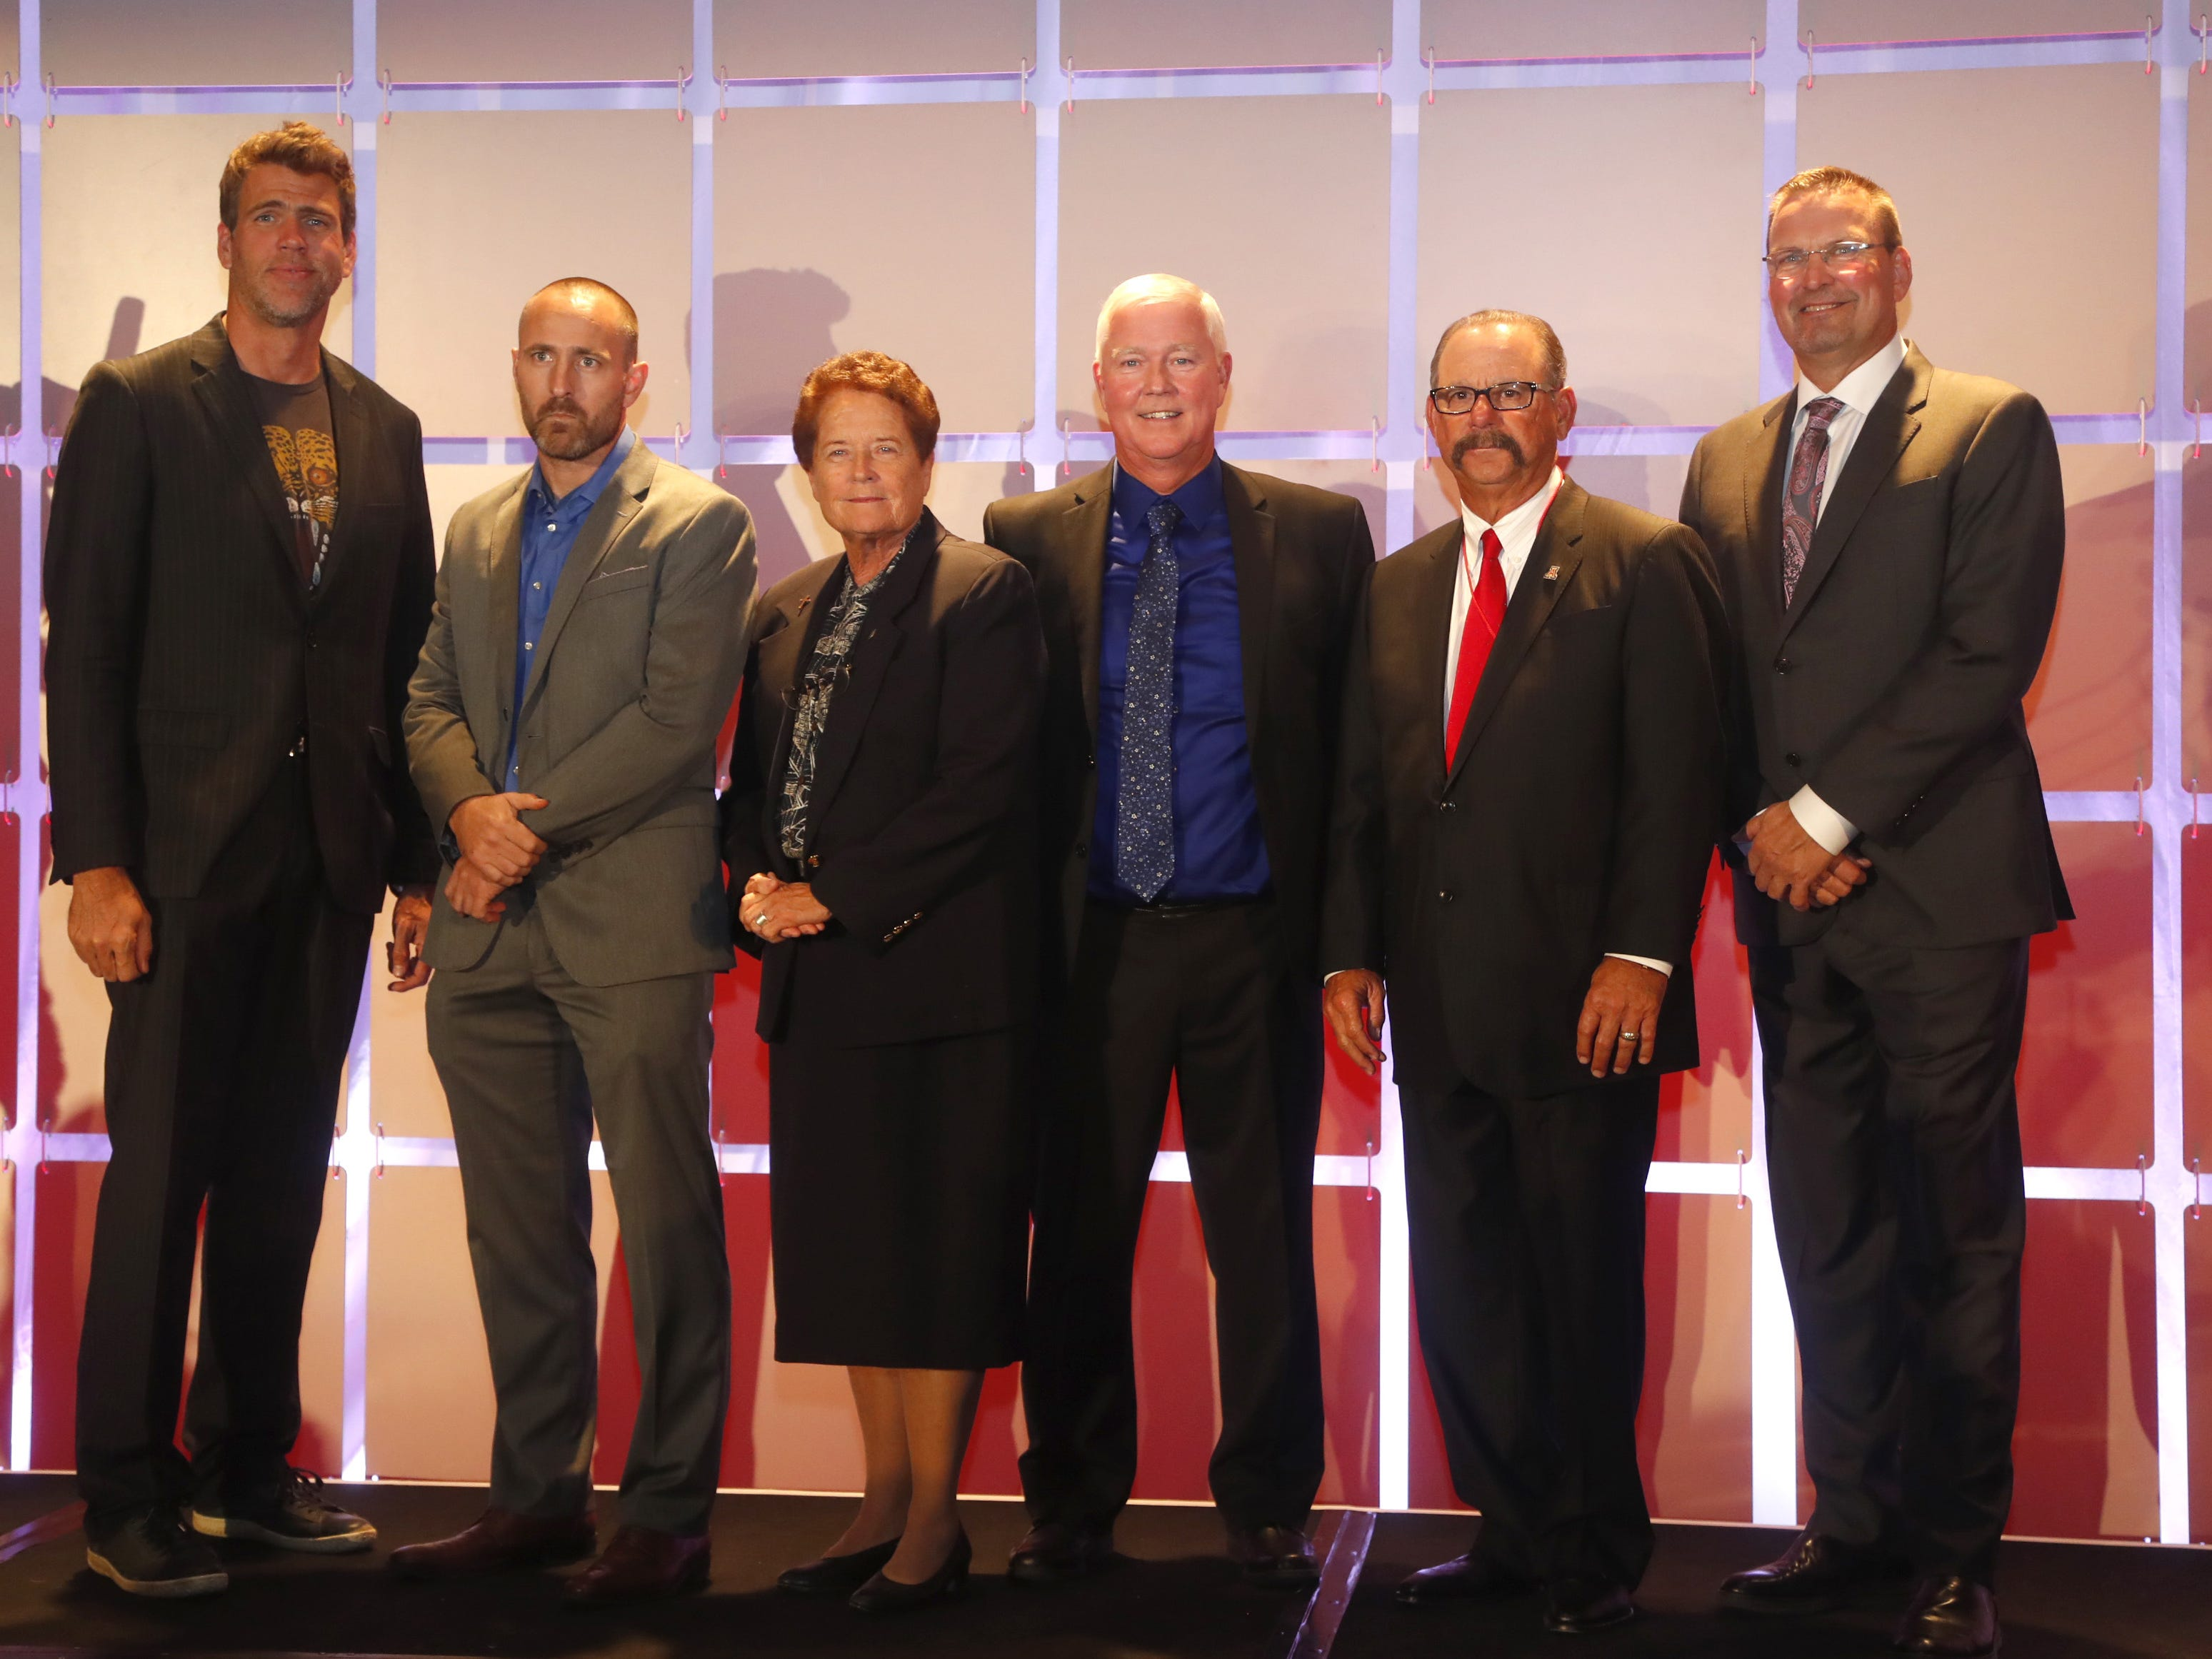 The 2018 Arizona Sports Hall of Fame inductees Gary Hall Jr. (L-R), Kevin Tillman representing is brother Pat Tillman, Sister Lynn Winsor, Jeff Oscarson, Mike Candrea and Mark Grace  line up for a picture before their ceremony at the Scottsdale Plaza Resort in Scottsdale, Ariz. on November 1, 2018.